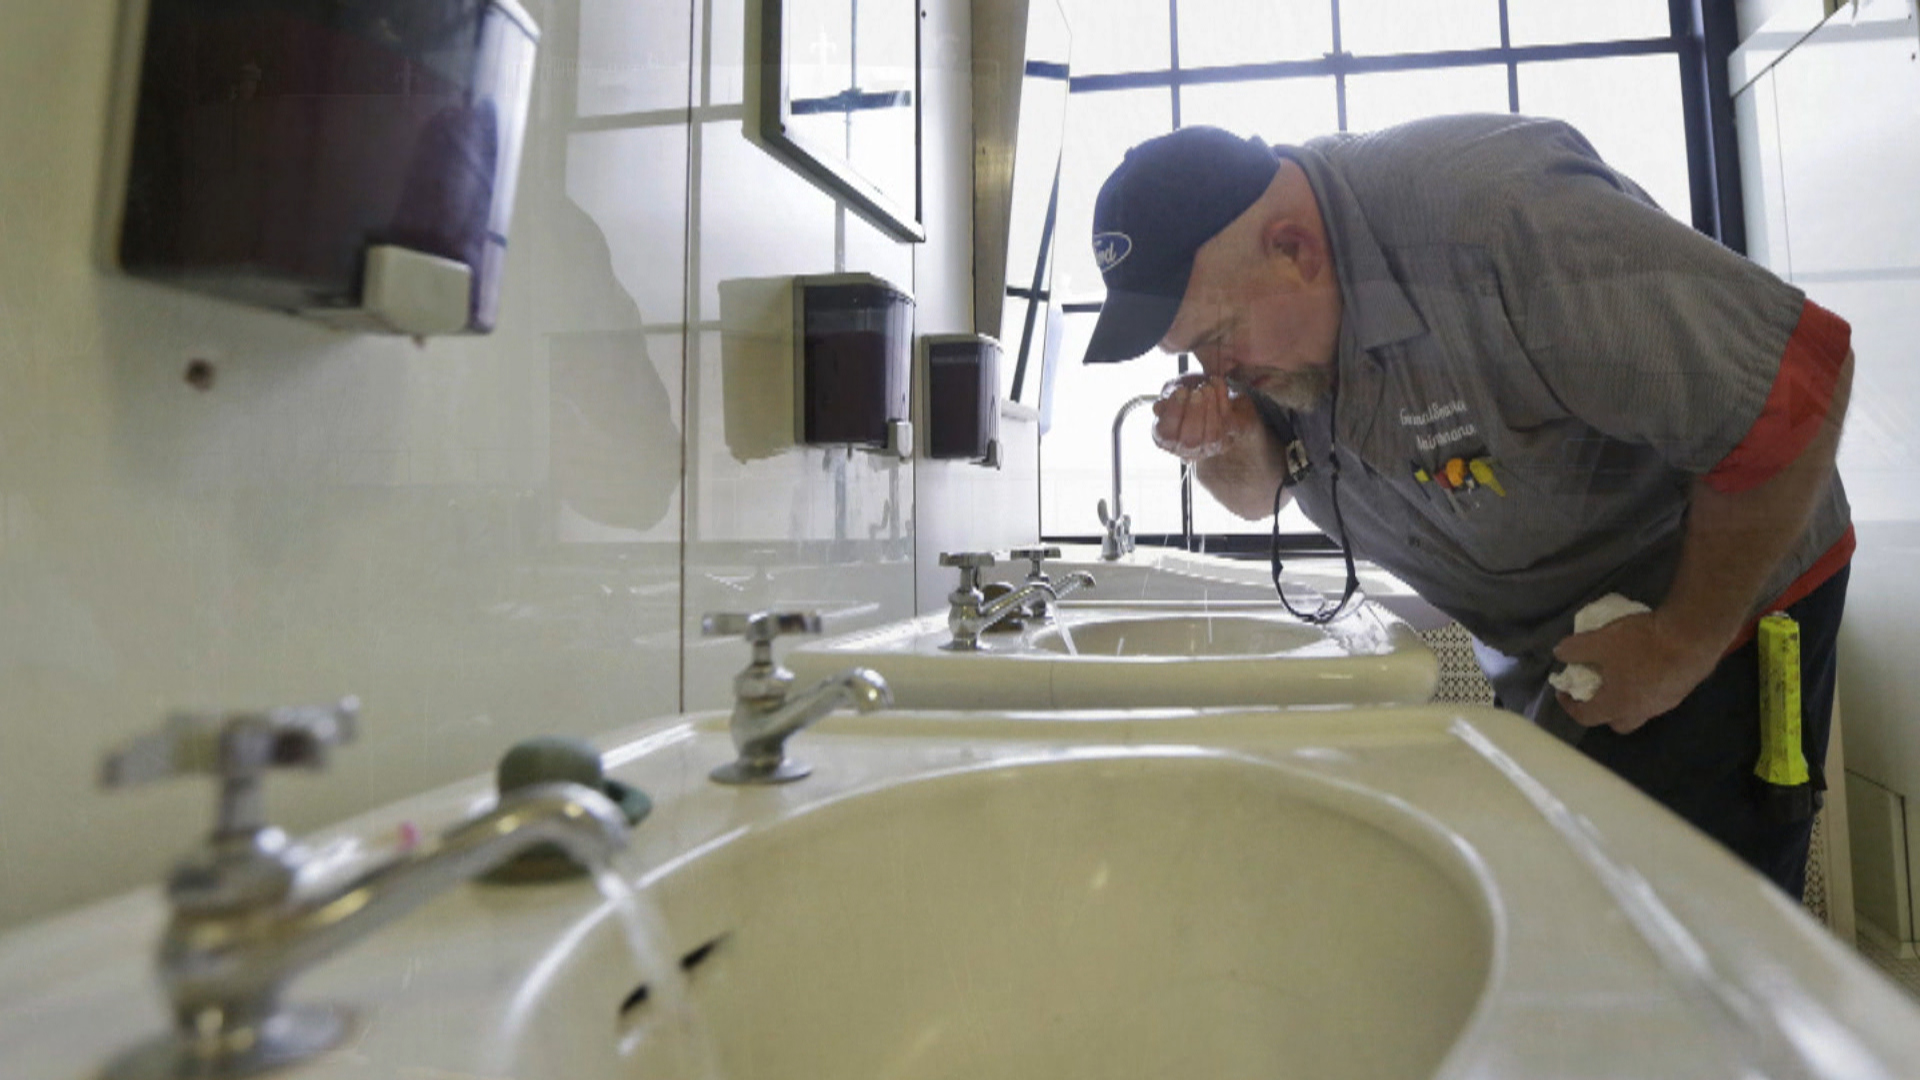 Growing doubts about water safety after spill